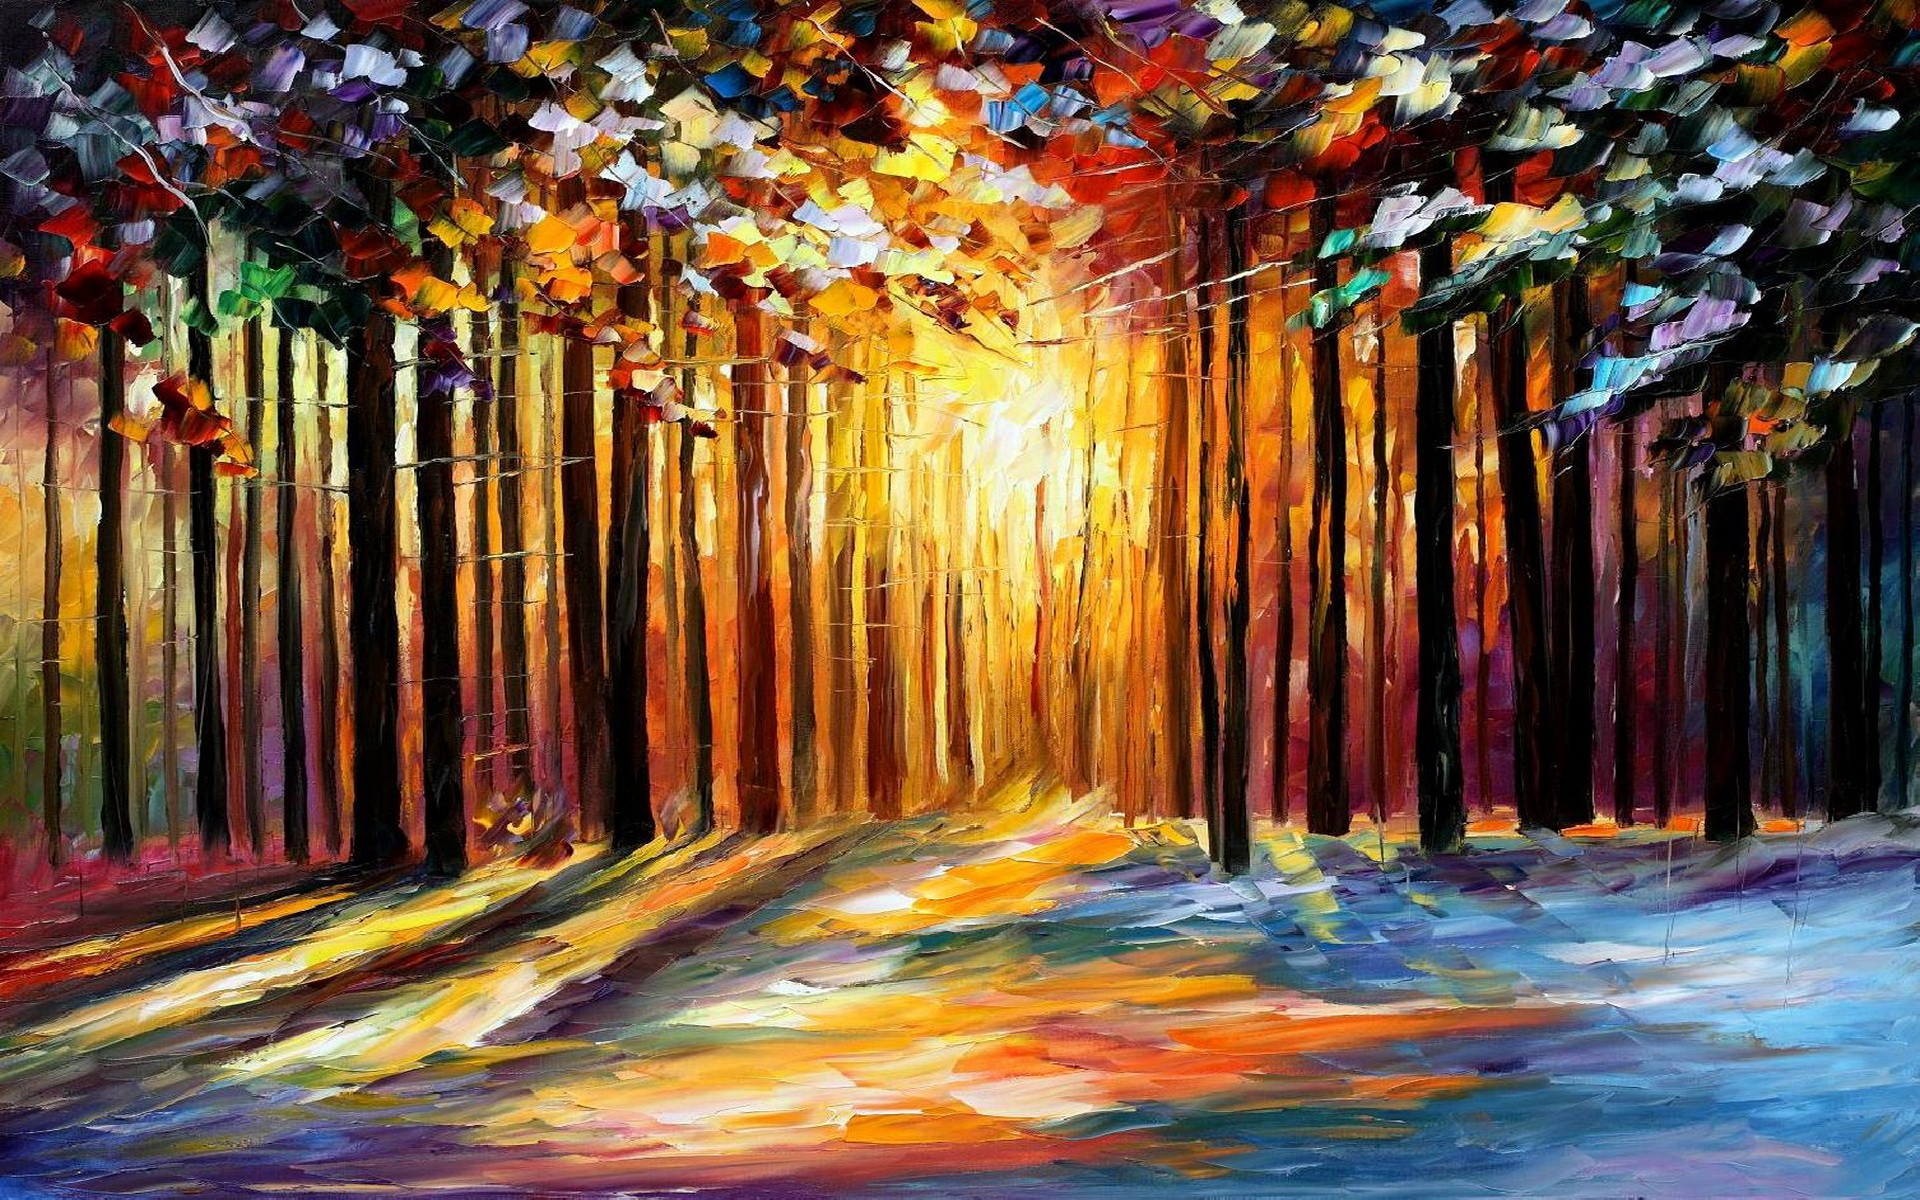 painting background images